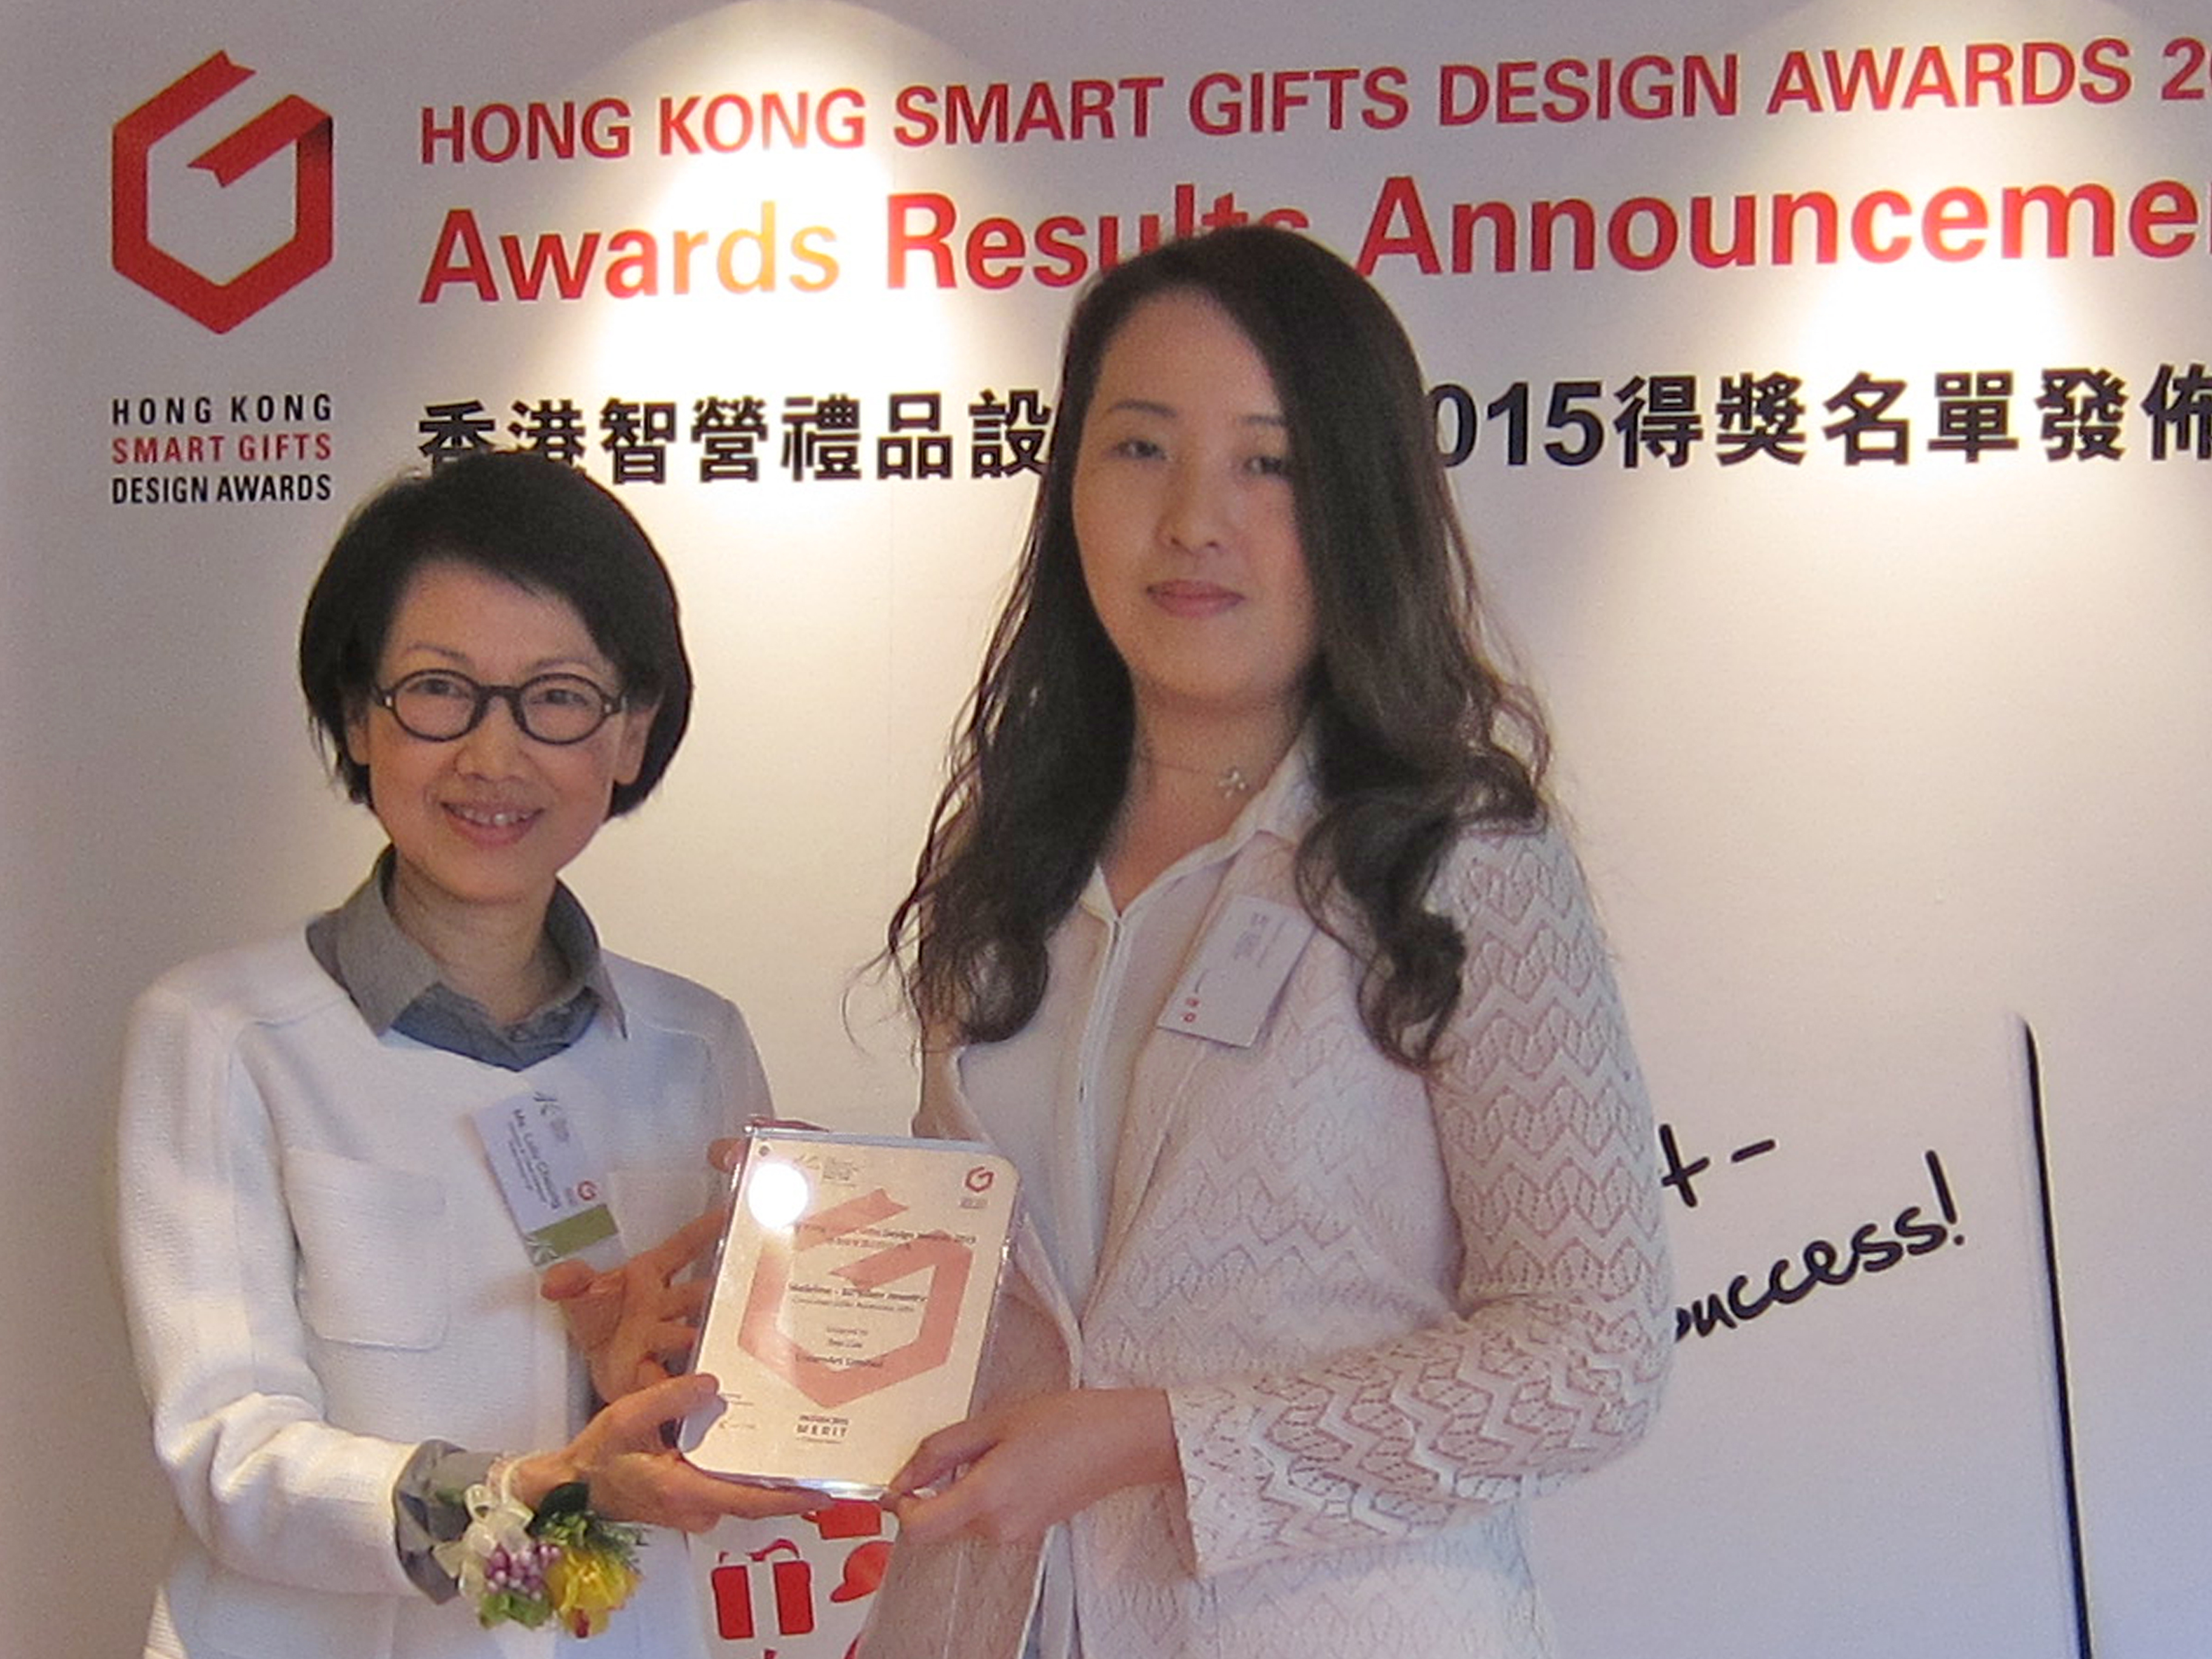 Ms. Joey Lau, IDSHK Member (Right) and Ms. Lu Lu Cheung, Founders & Creative Director of Rolls Group Ltd. (Left)